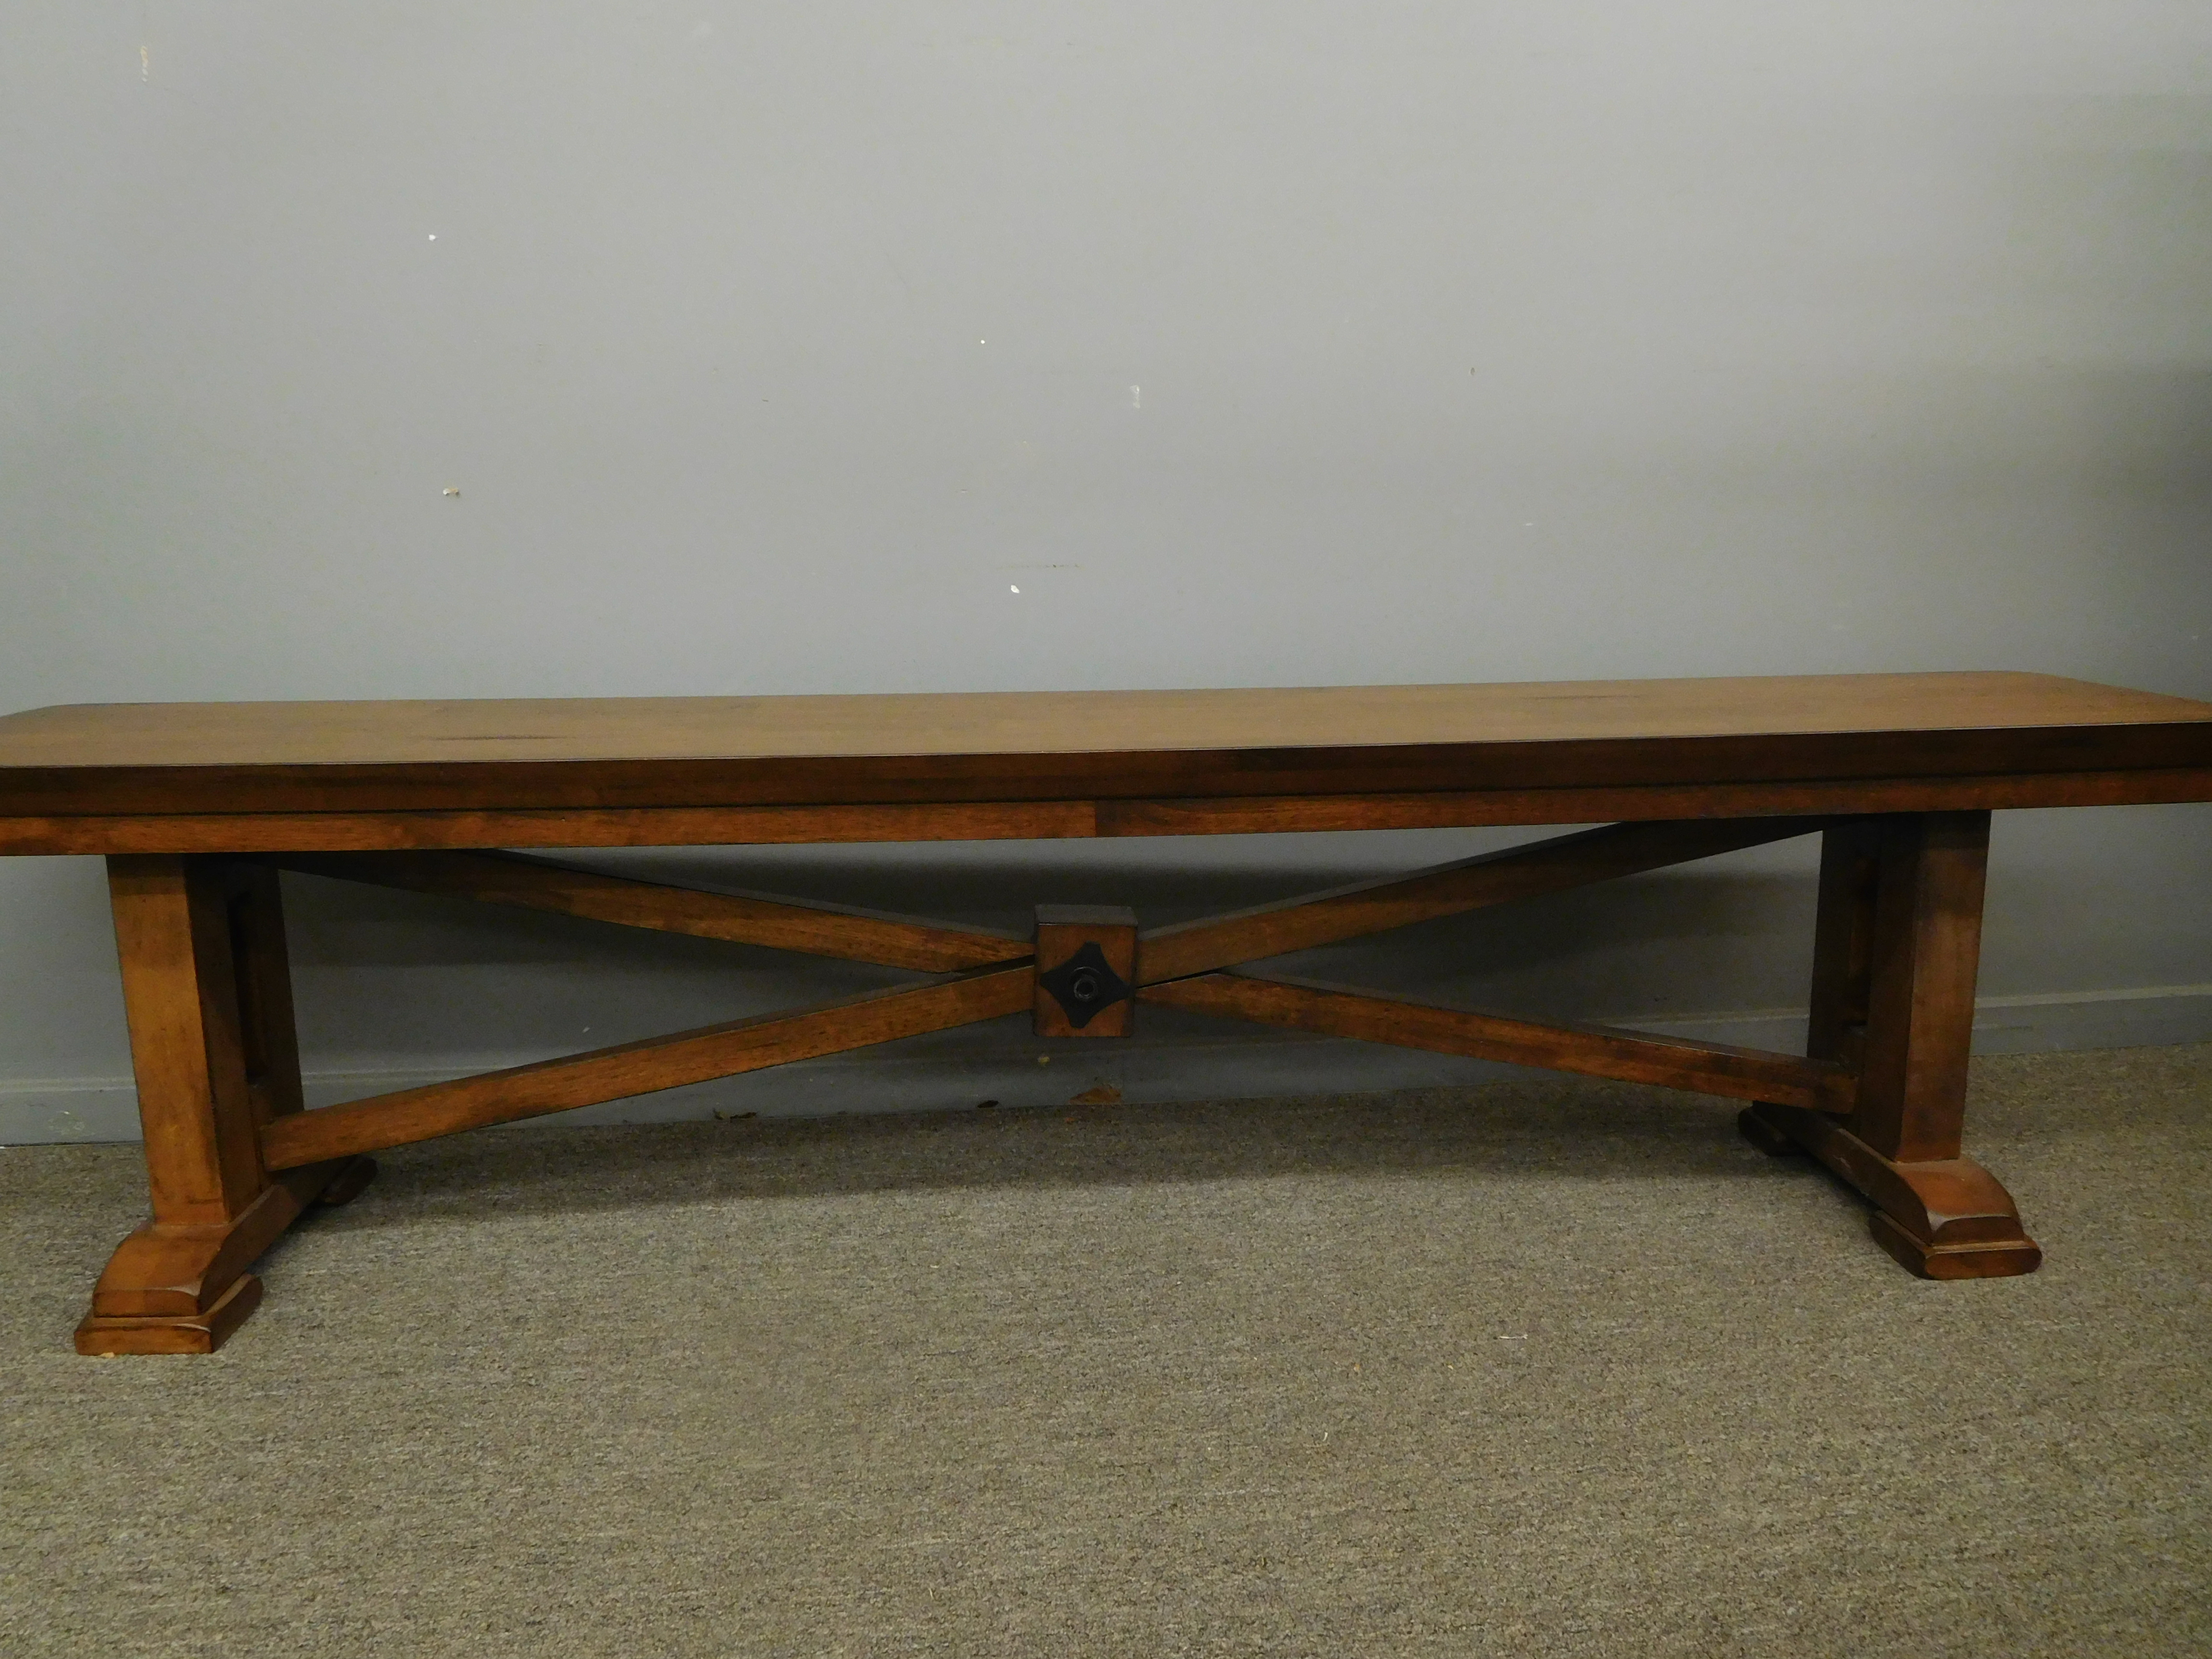 Unique Vintage Handcrafted Wood Bench with Lengthwise X-Brace